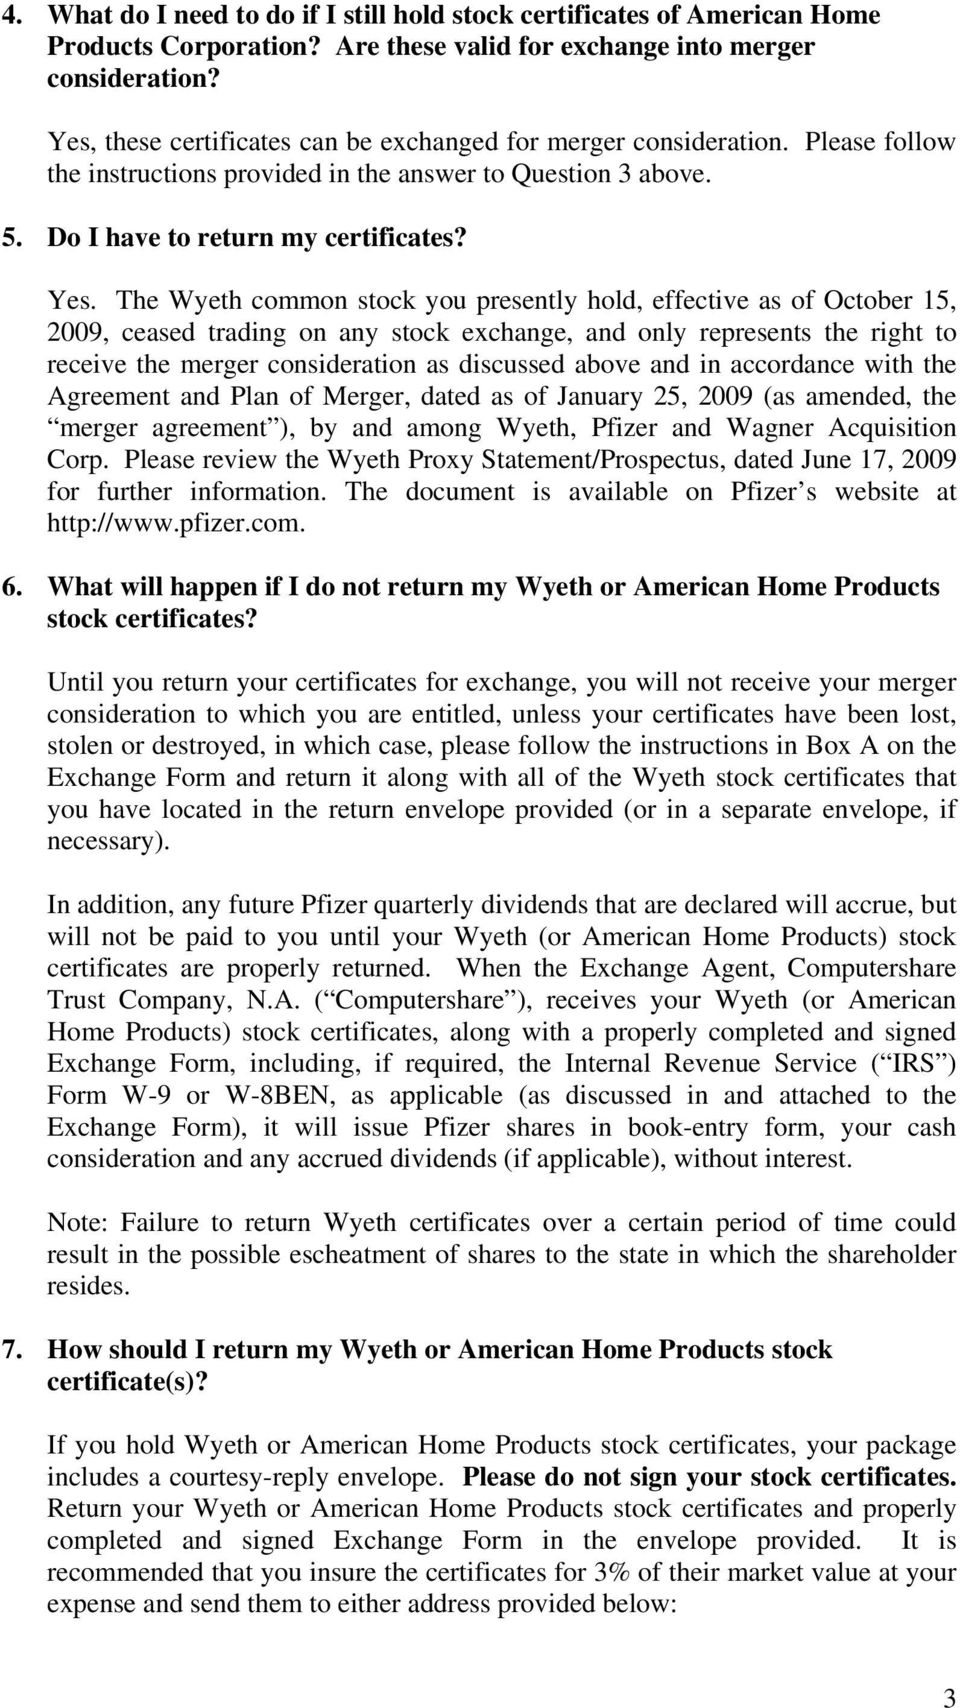 The Wyeth common stock you presently hold, effective as of October 15, 2009, ceased trading on any stock exchange, and only represents the right to receive the merger consideration as discussed above